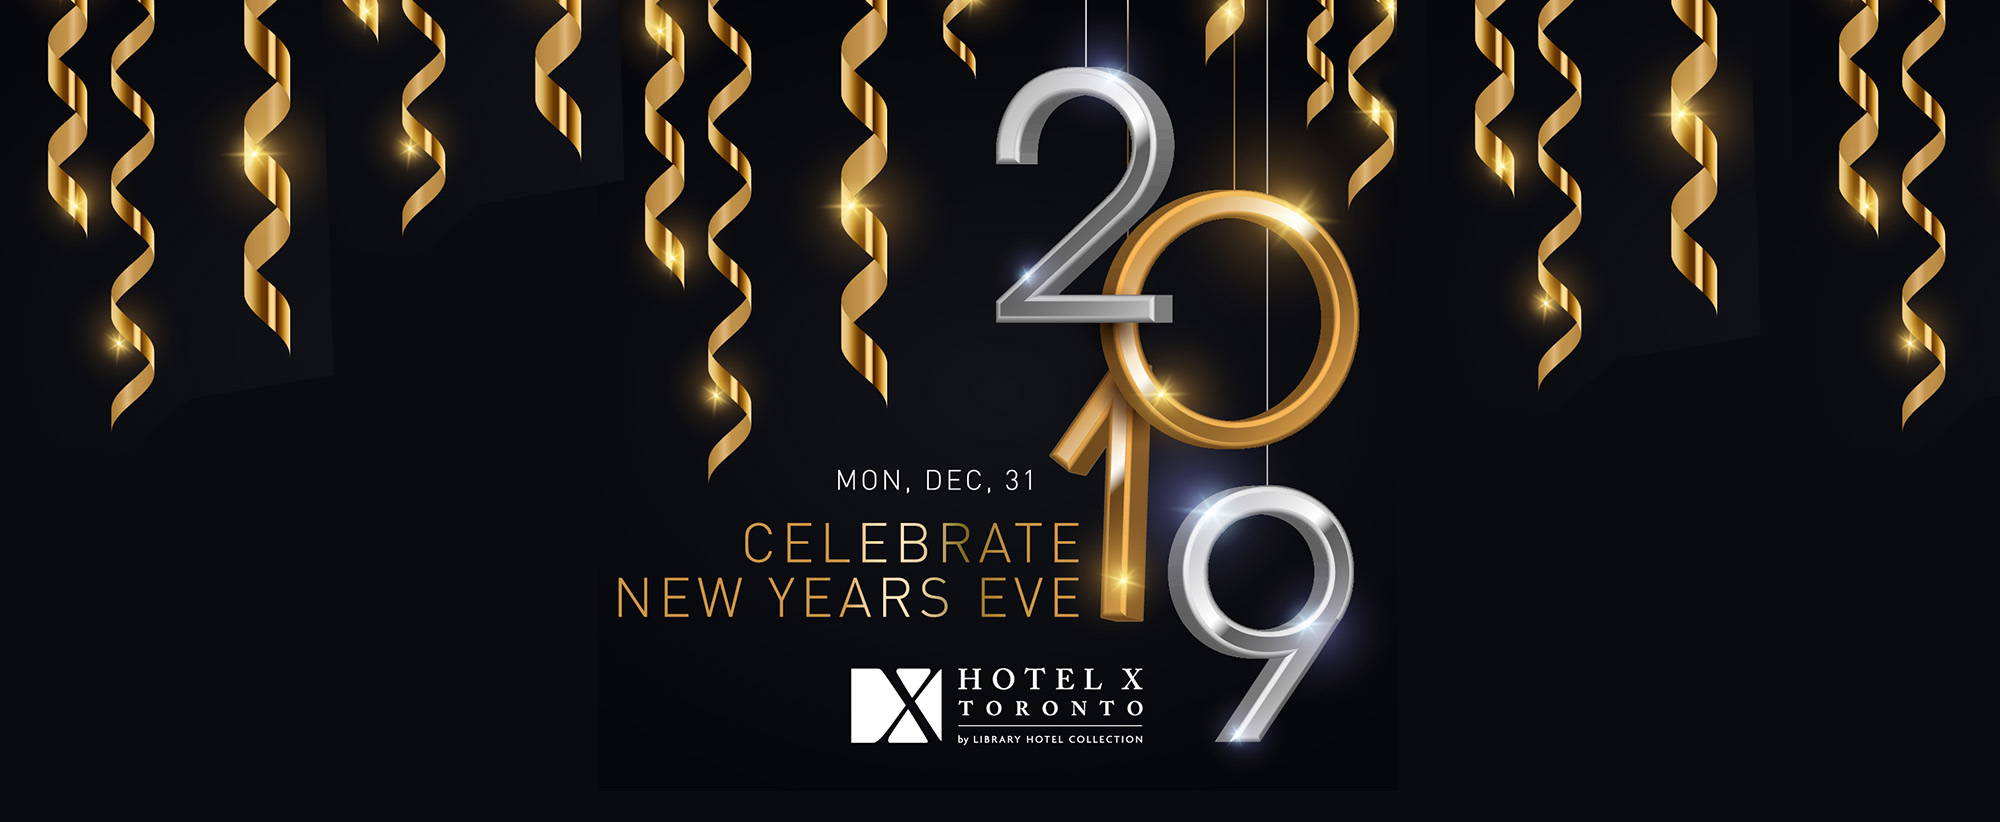 New Years Eve 2019 Toronto Events Bypeterandpauls Com